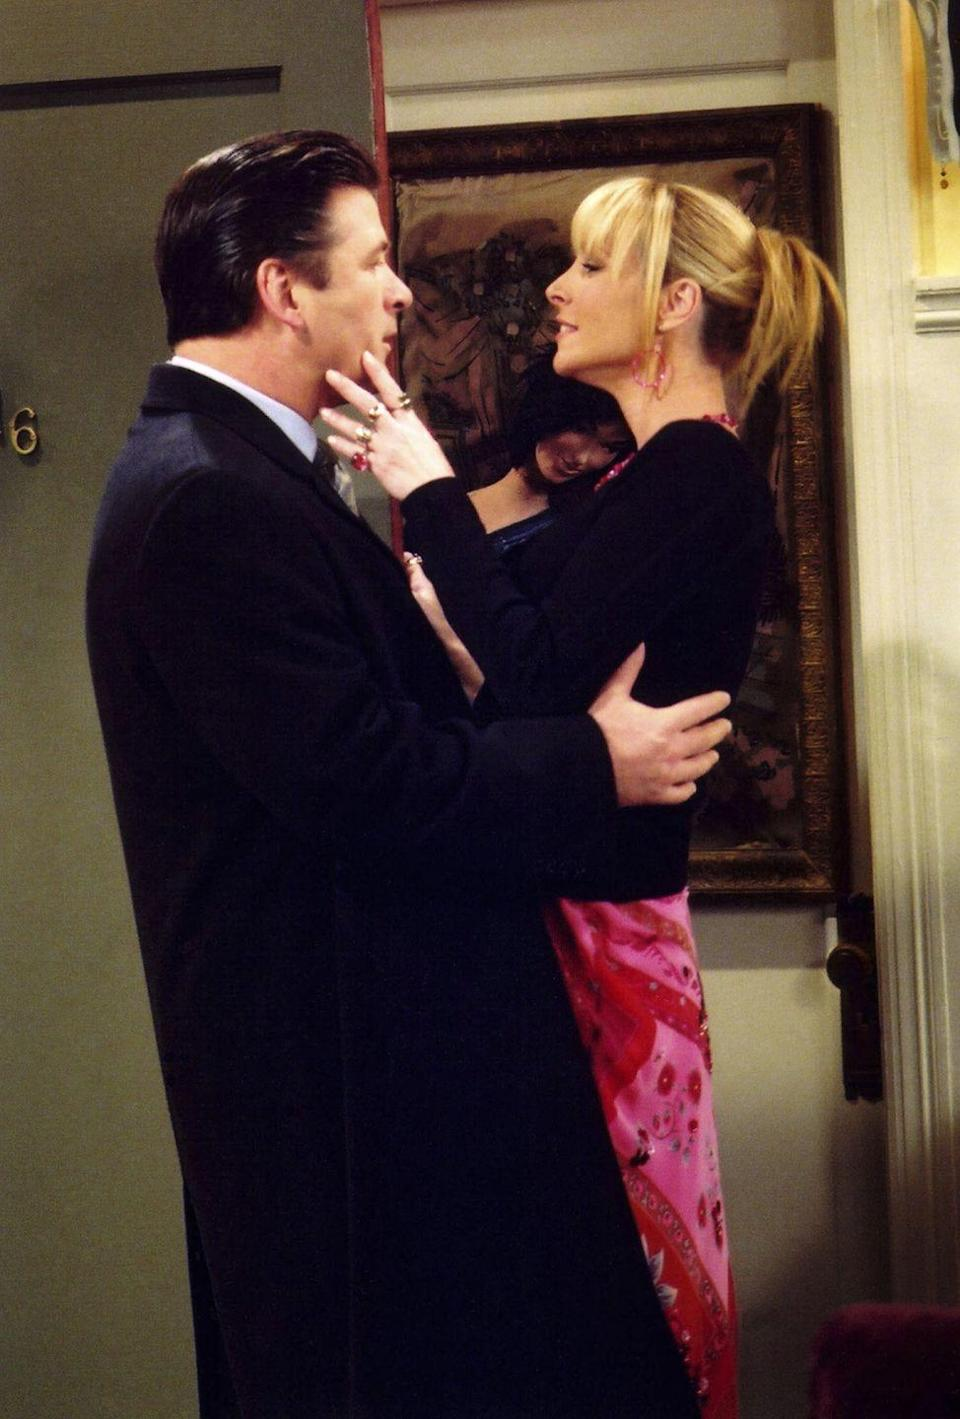 """<p>Alec Baldwin appeared in two episodes of the series as Parker, Pheobe's overly enthusiastic boyfriend <a href=""""https://www.youtube.com/watch?v=0xFrBfeKJoo"""" rel=""""nofollow noopener"""" target=""""_blank"""" data-ylk=""""slk:whose fascination with Massapequa"""" class=""""link rapid-noclick-resp"""">whose fascination with Massapequa</a> irritates everyone. </p>"""